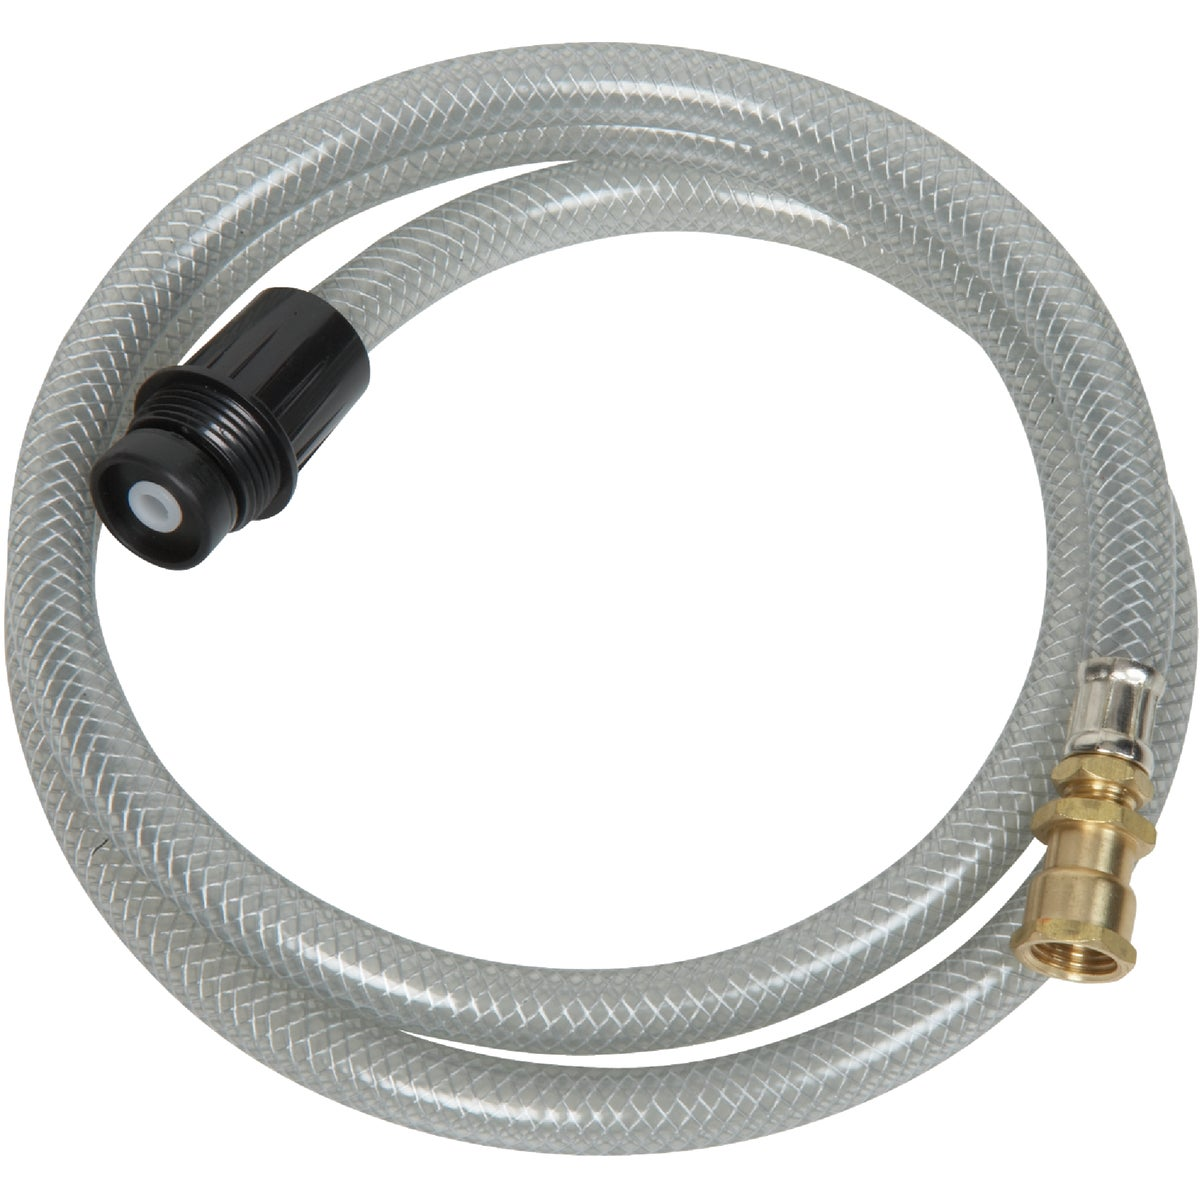 SINK SPRAY HOSE - W-1316LF by Do it Best